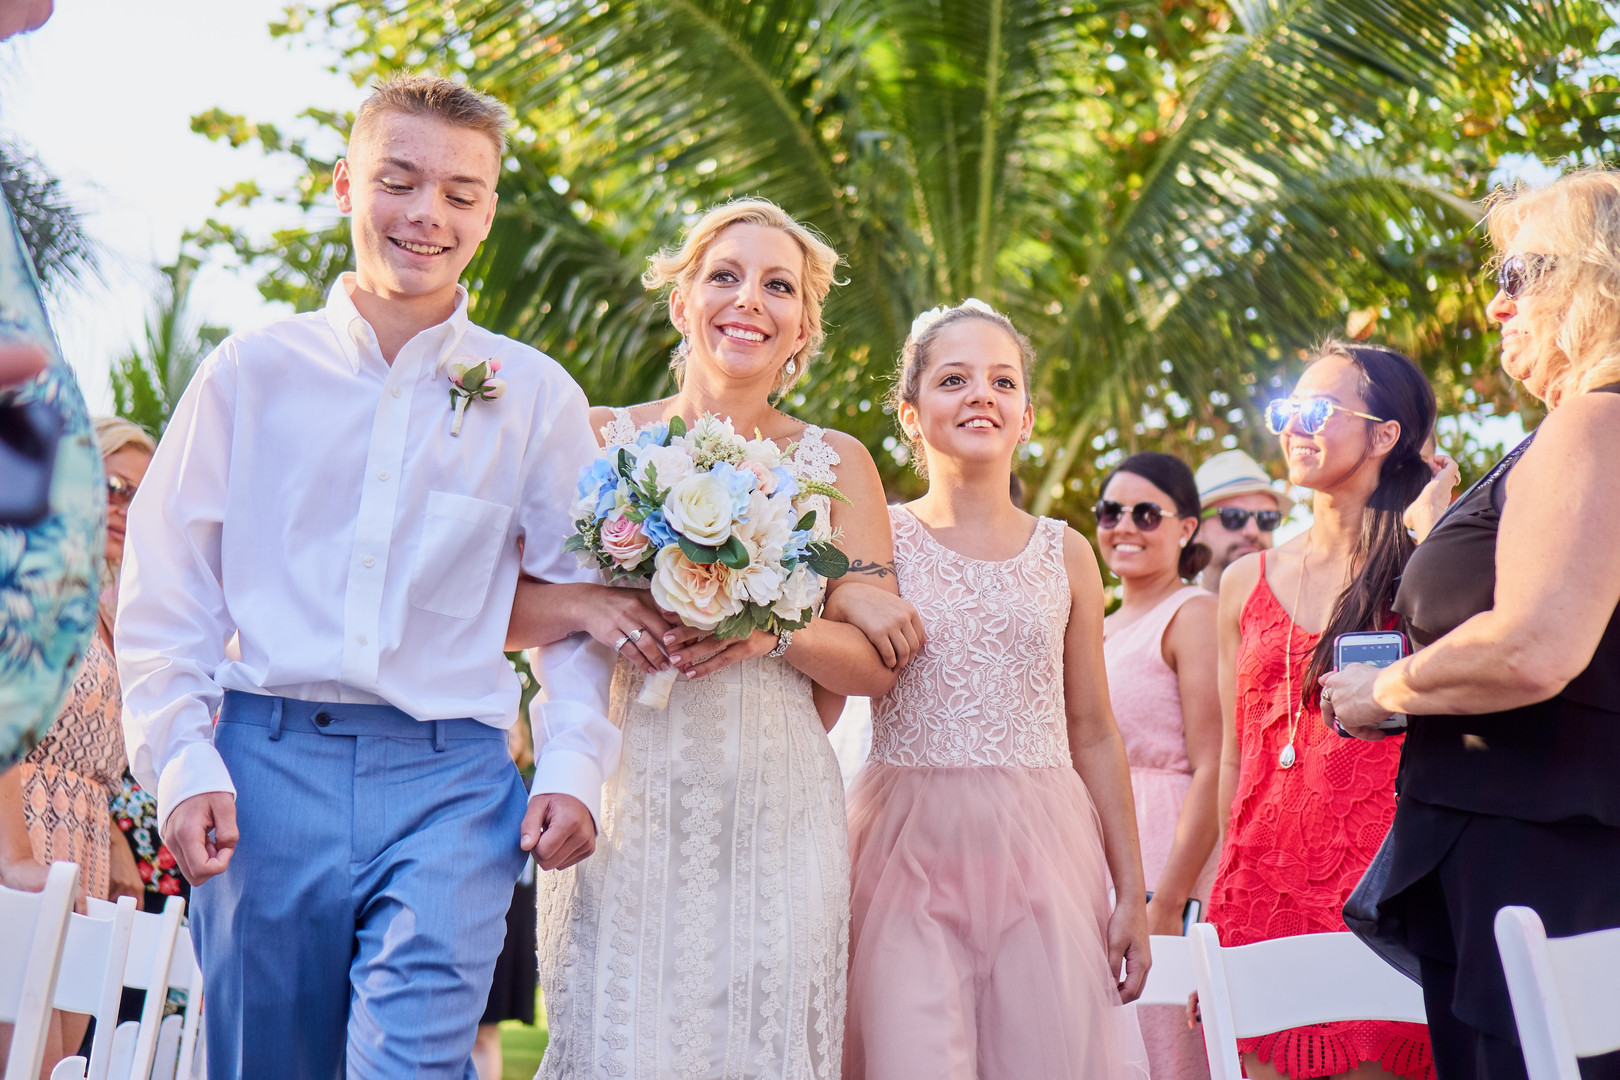 Stephine and Jason Pastel Playa del Carmen Destination Wedding, Photography by Lavender Bouquet Photography for Destination Wedding Blog Adriana Weddings